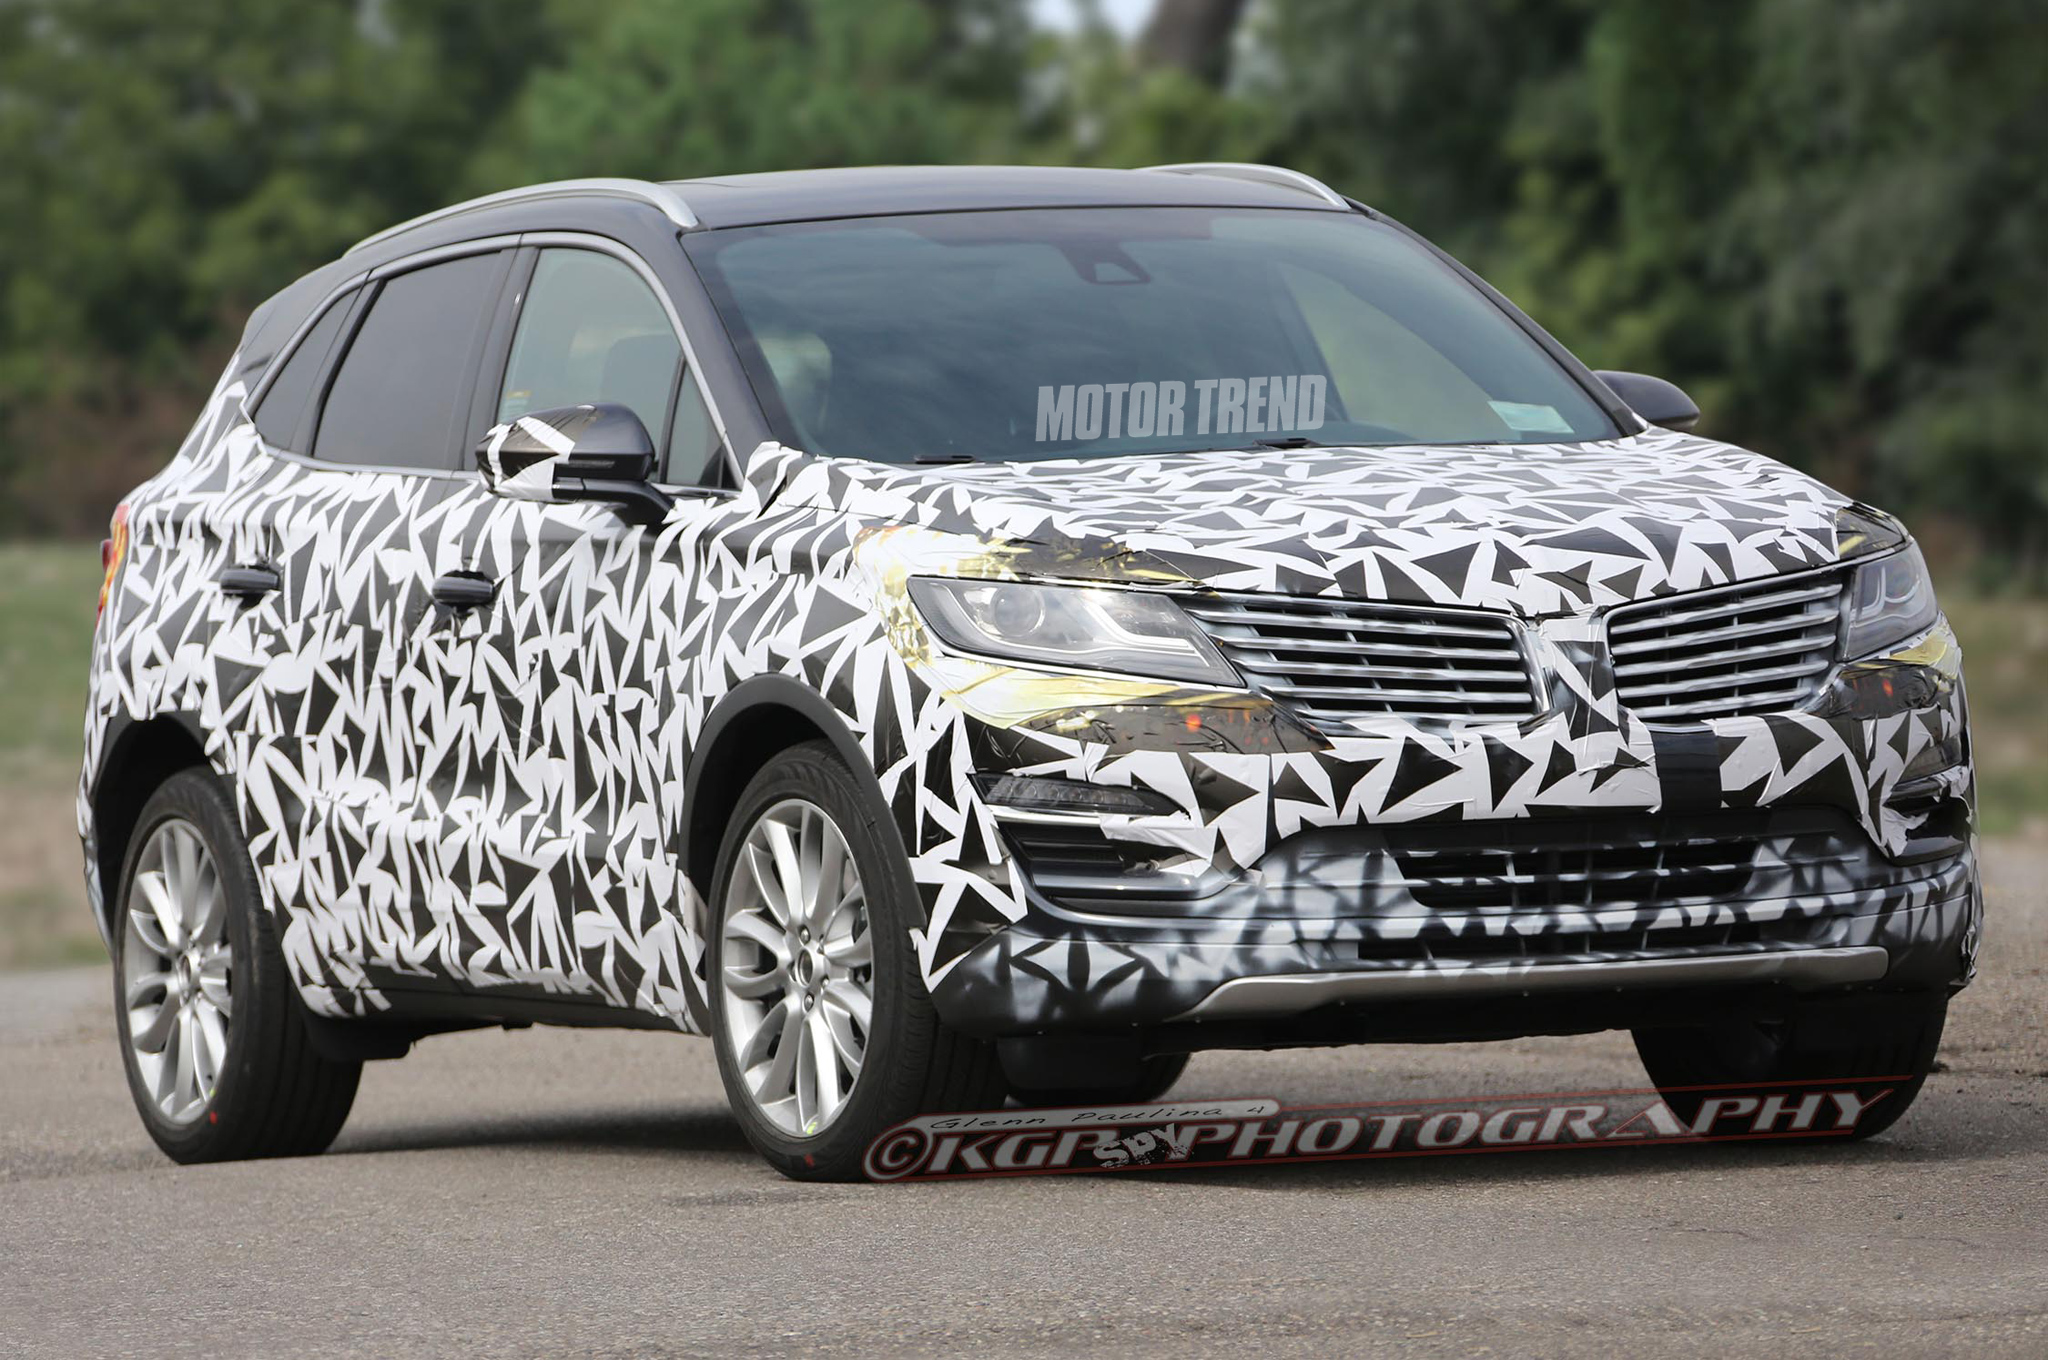 Article | Spied! 2015 Lincoln MKC Prototype Looks Close to Stunning ...